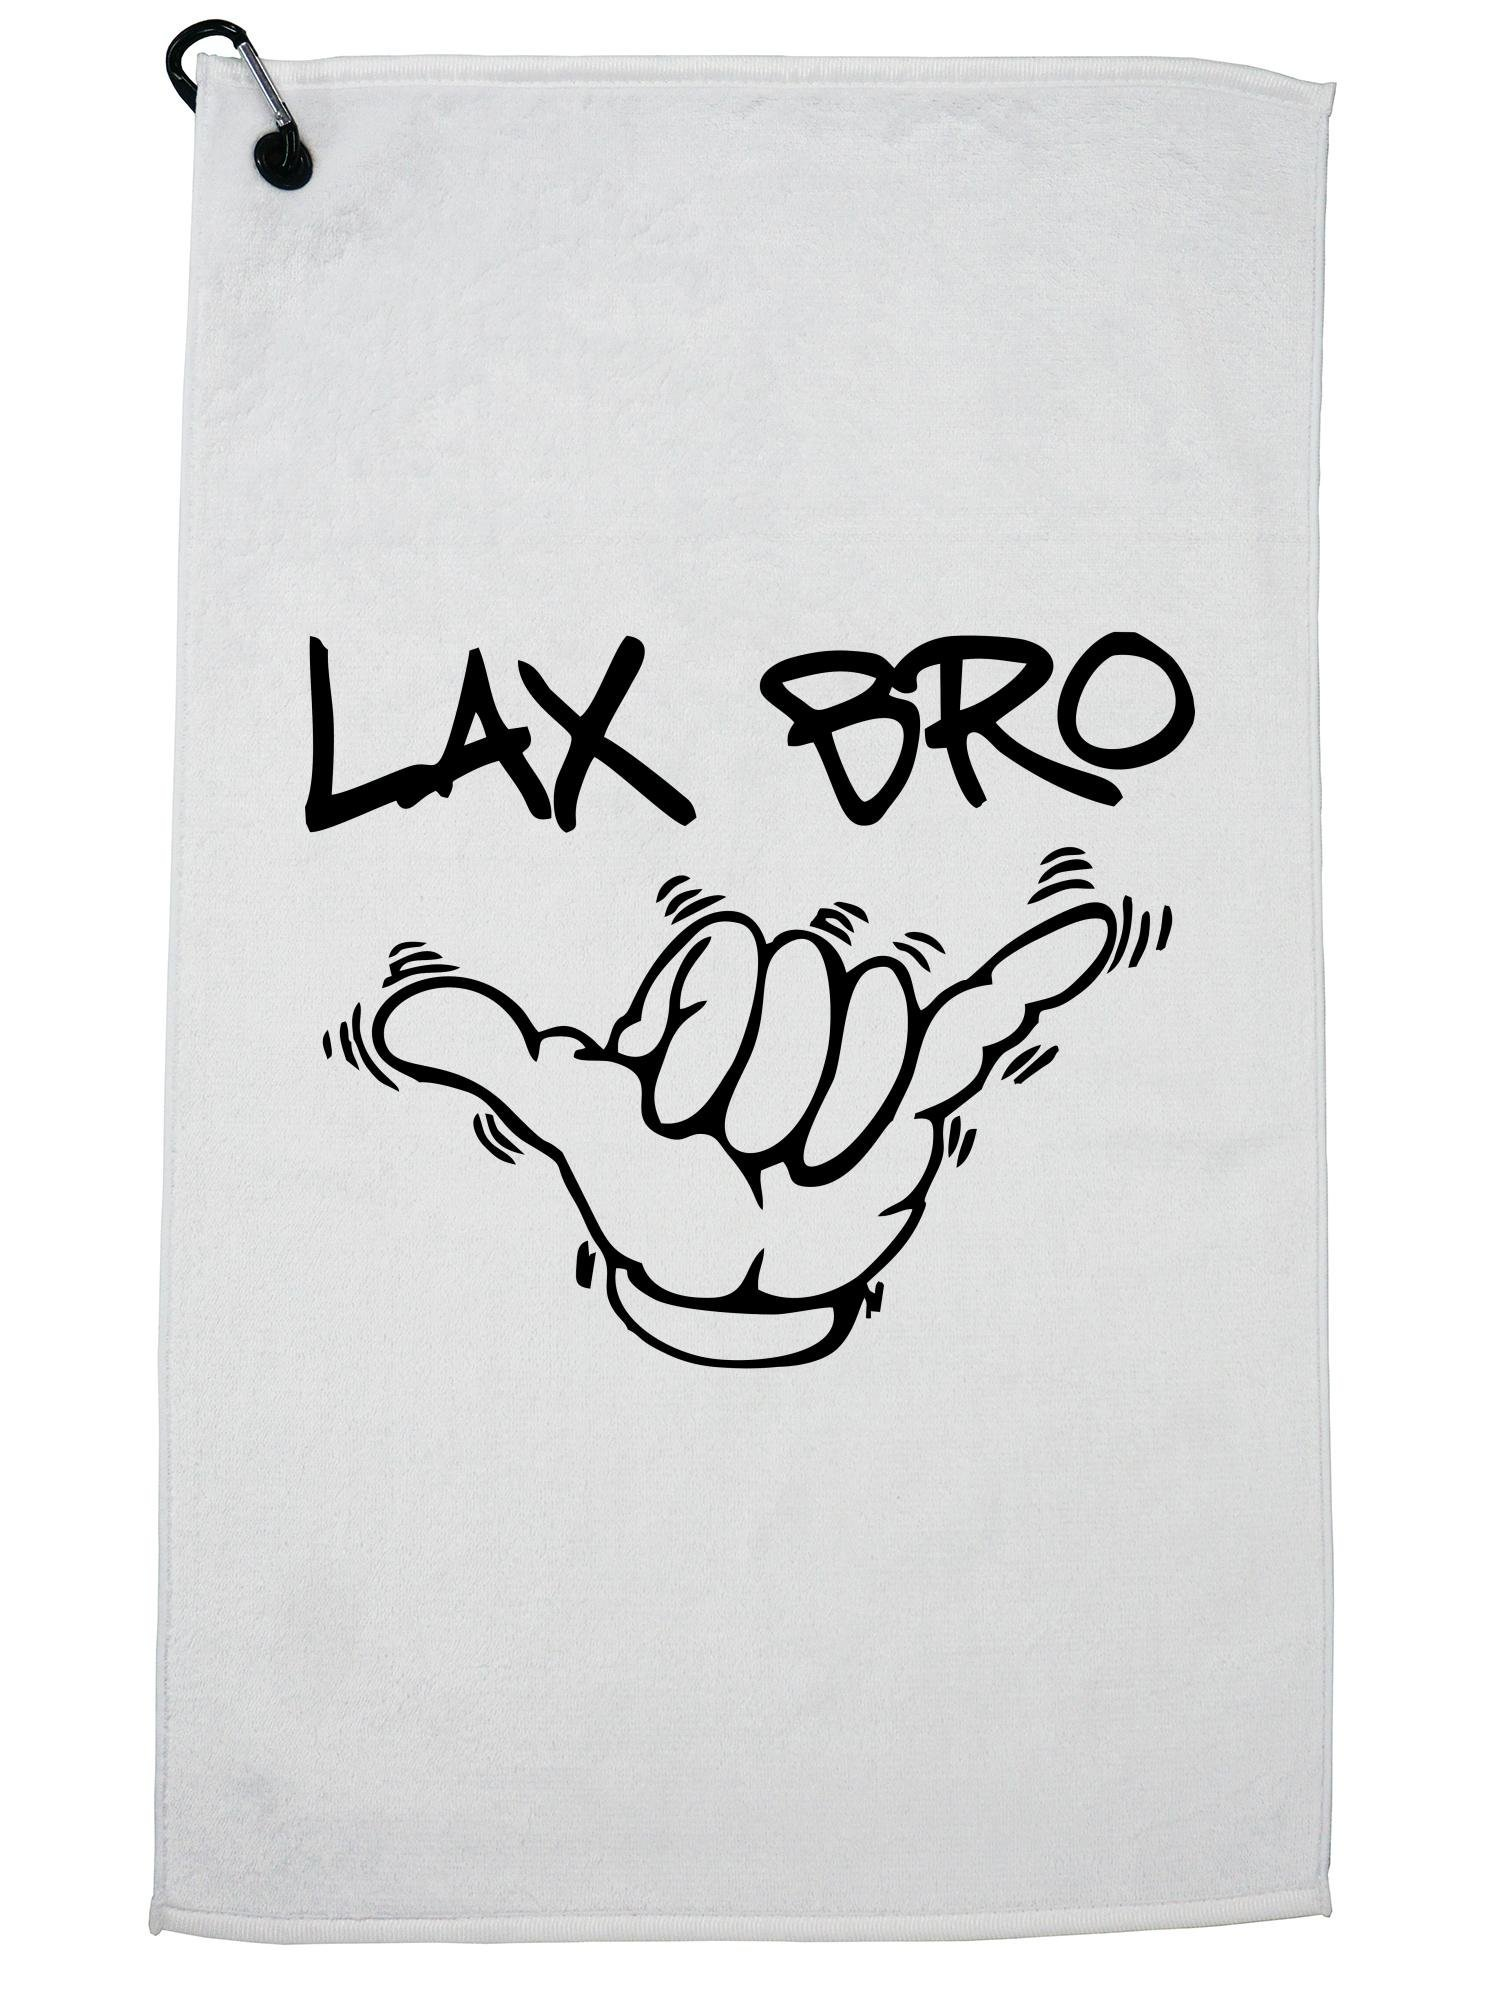 Hollywood Thread Lax Bro Lacrosse Hang Loose Hand Grahpic Golf Towel with Carabiner Clip